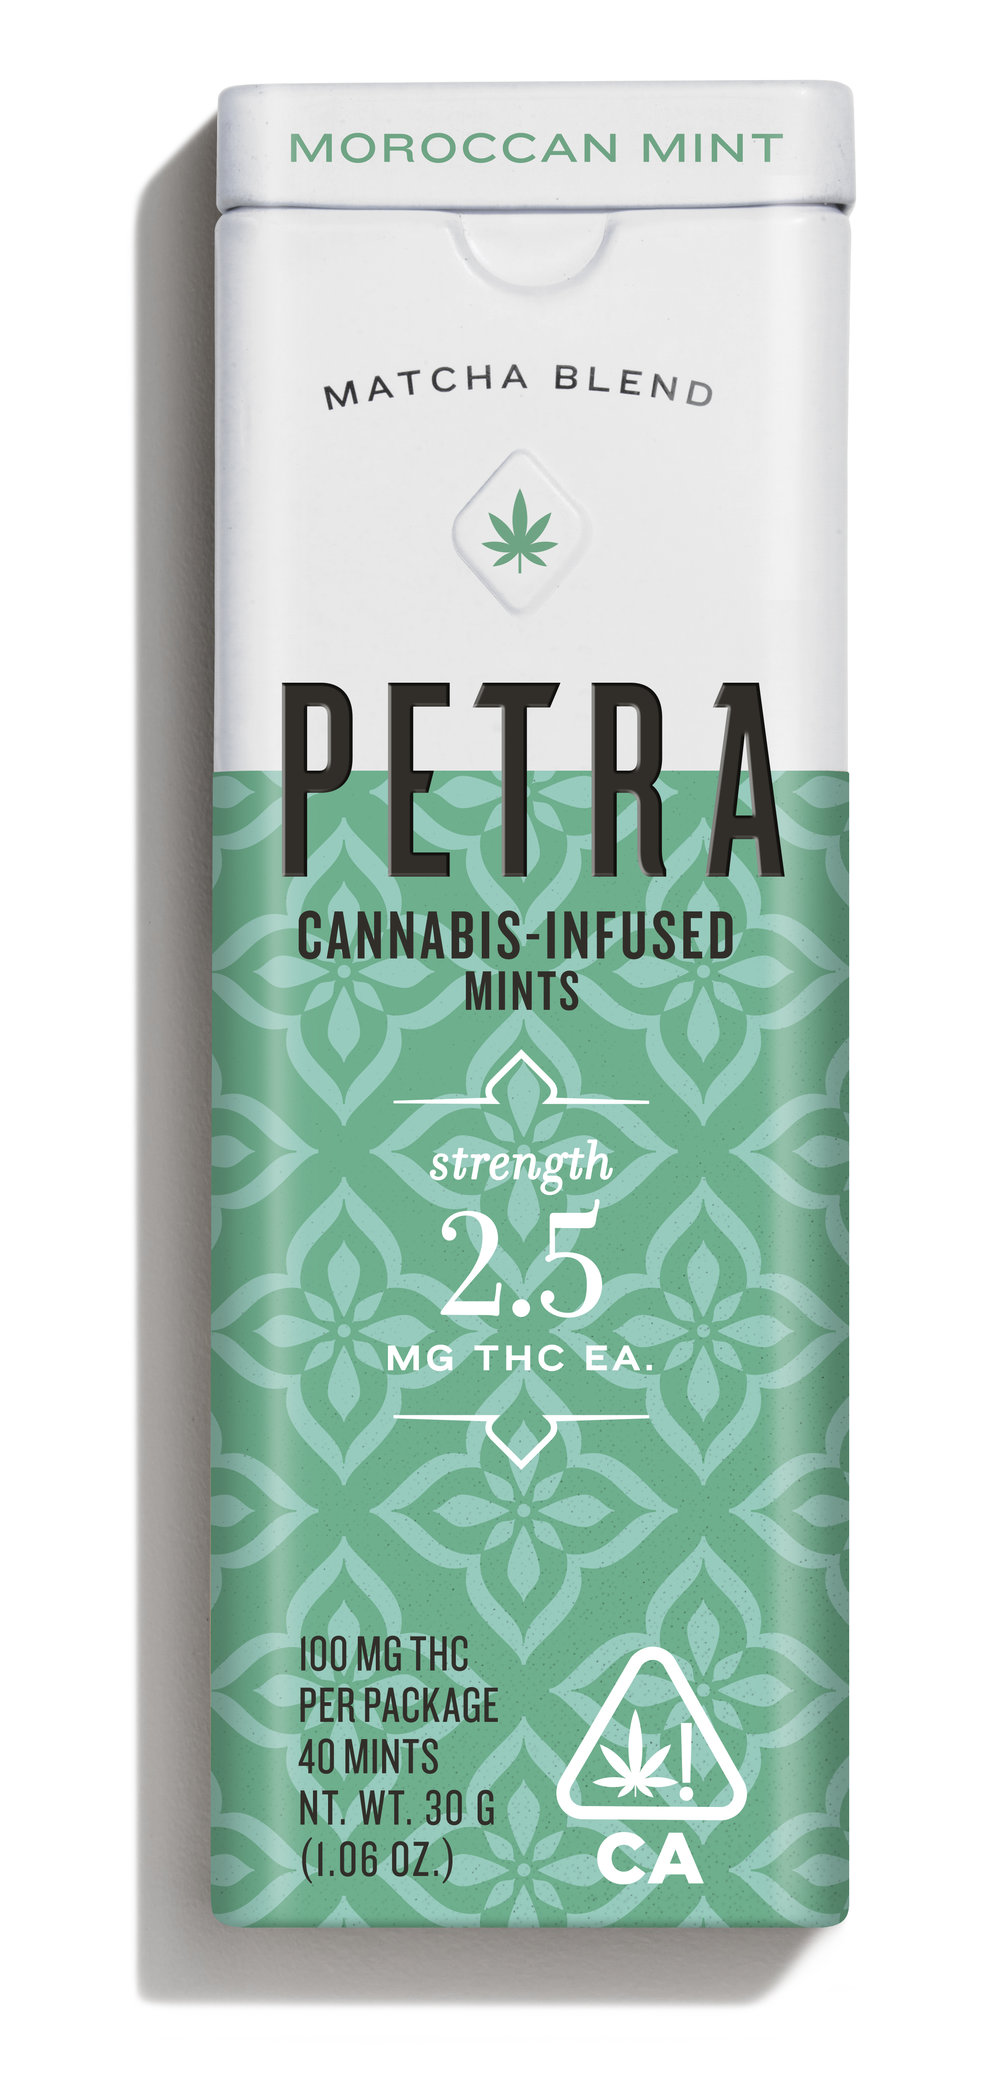 Petra.Over_white.MoroccanMint.100mg (1).jpg